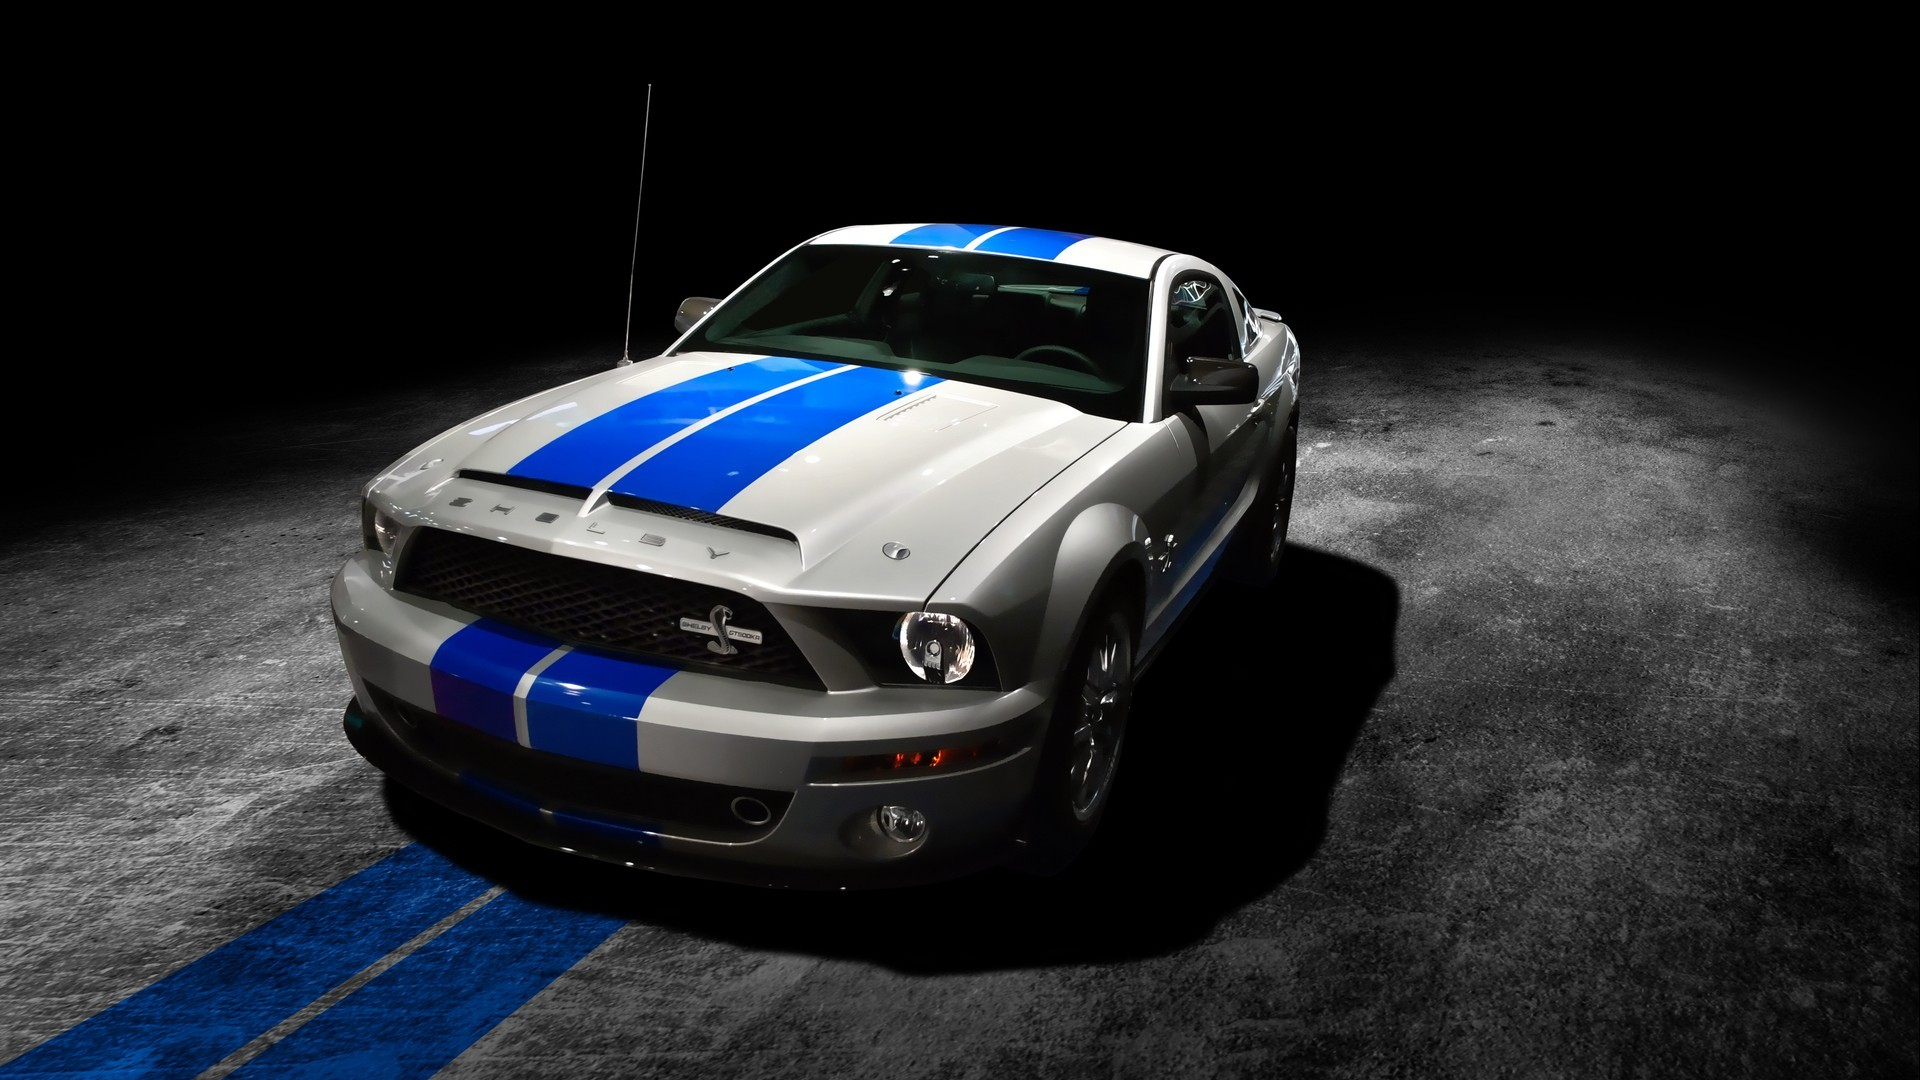 Cool Muscle Car Wallpapers Iphone